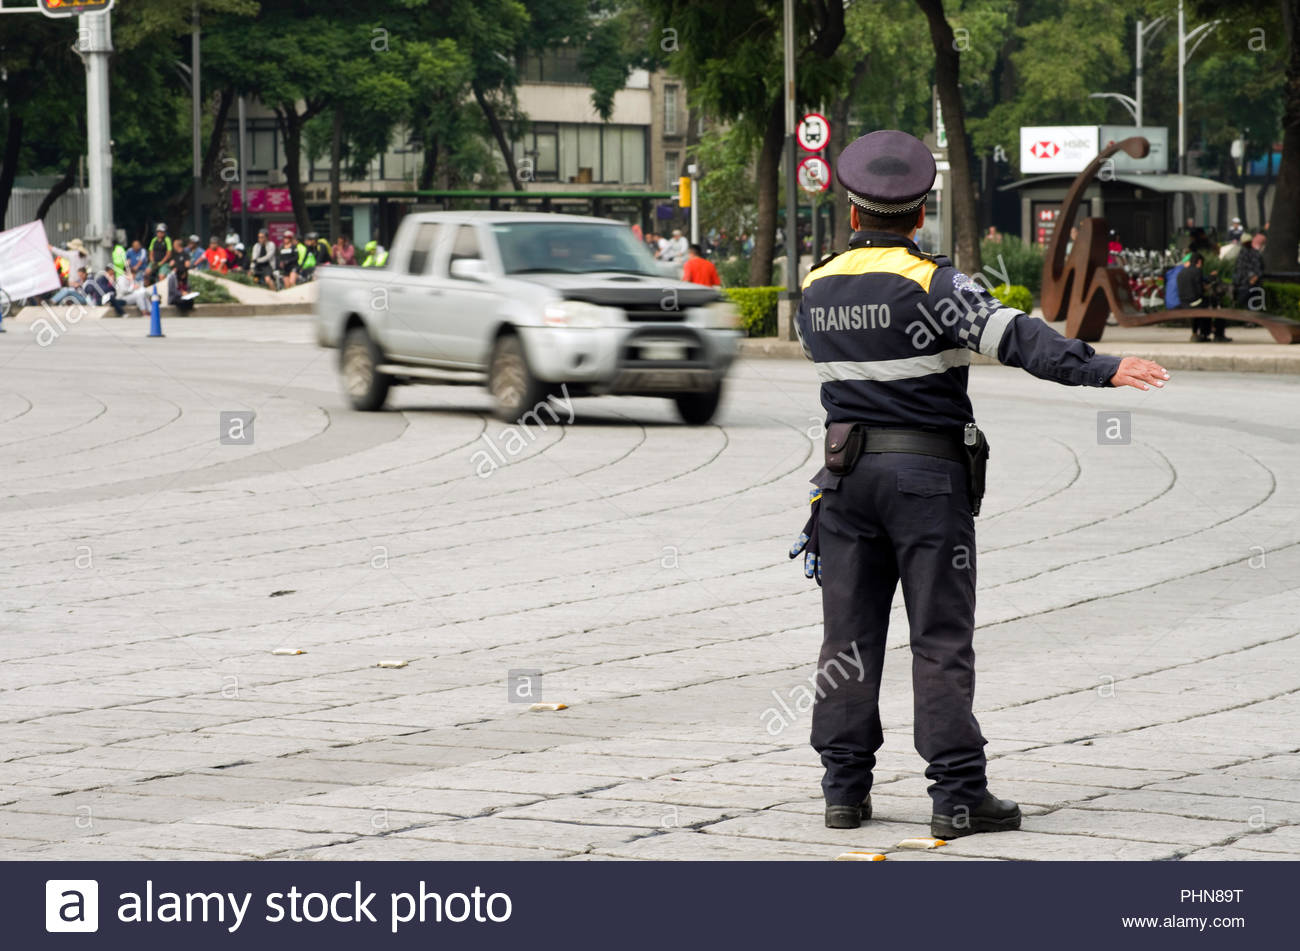 A transit police officer in Mexico City directs traffic on the Paseo de la Reforma. - Stock Image